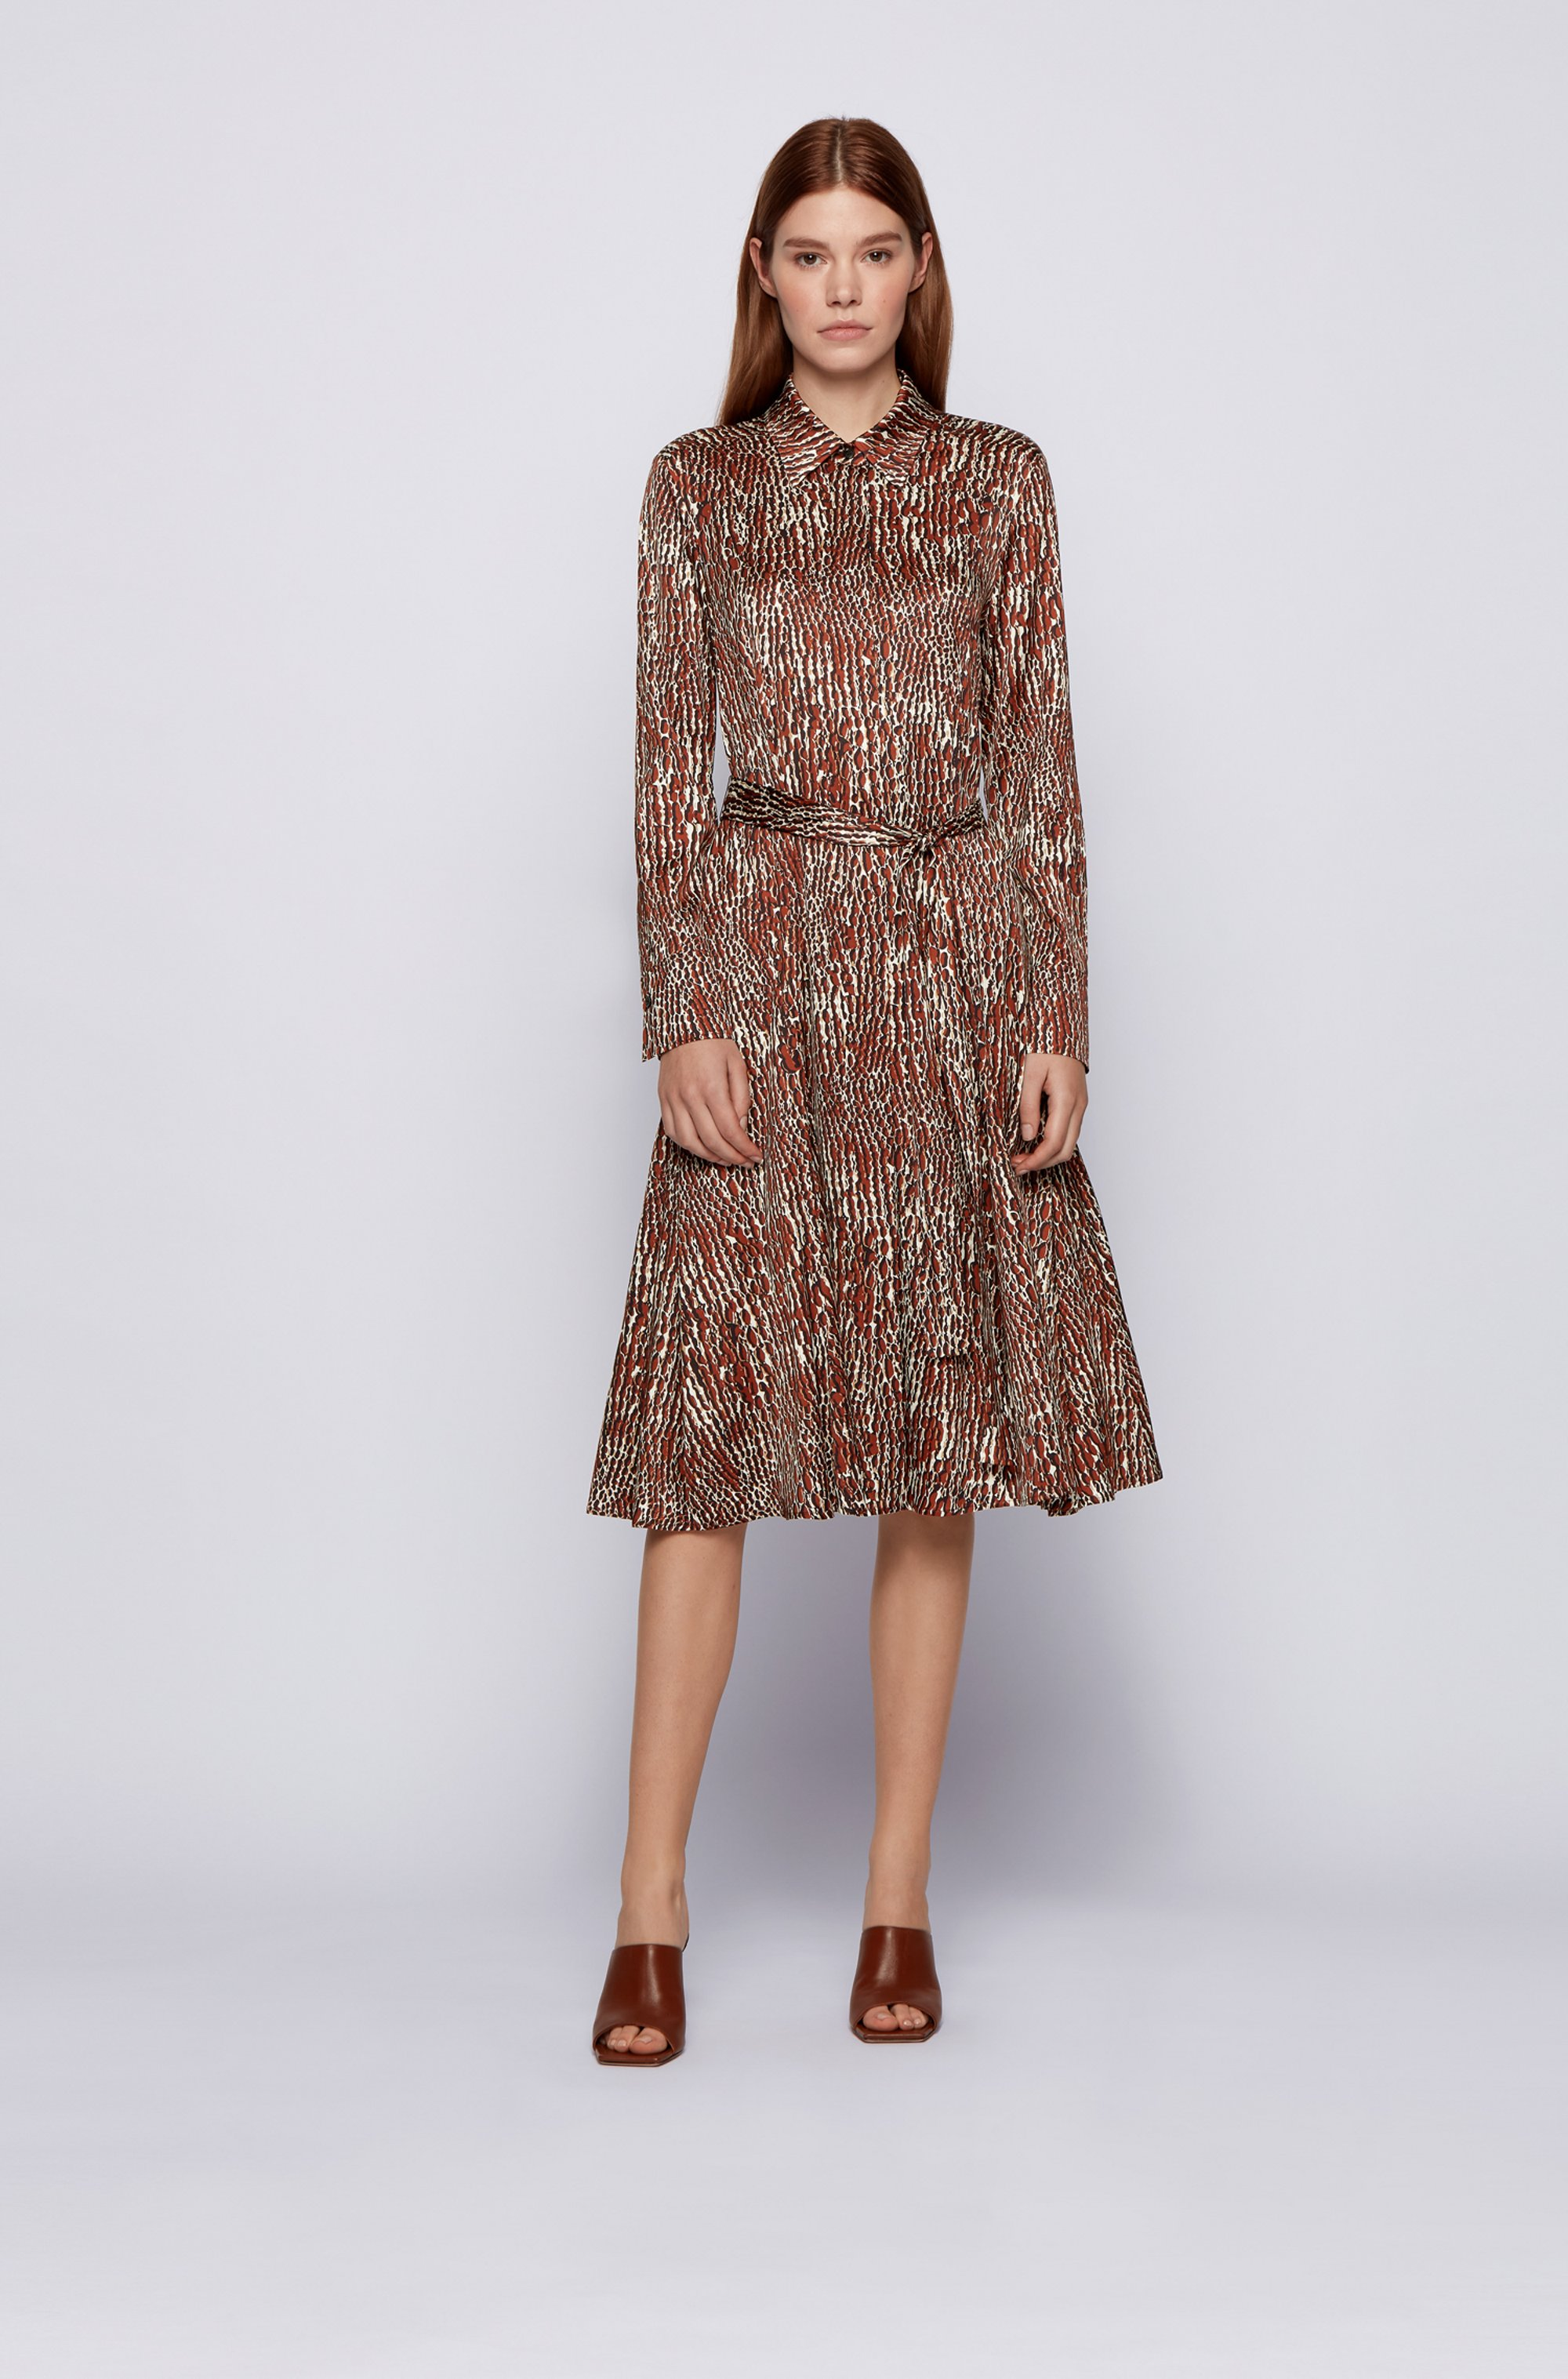 Crocodile-print shirt dress with detachable belt